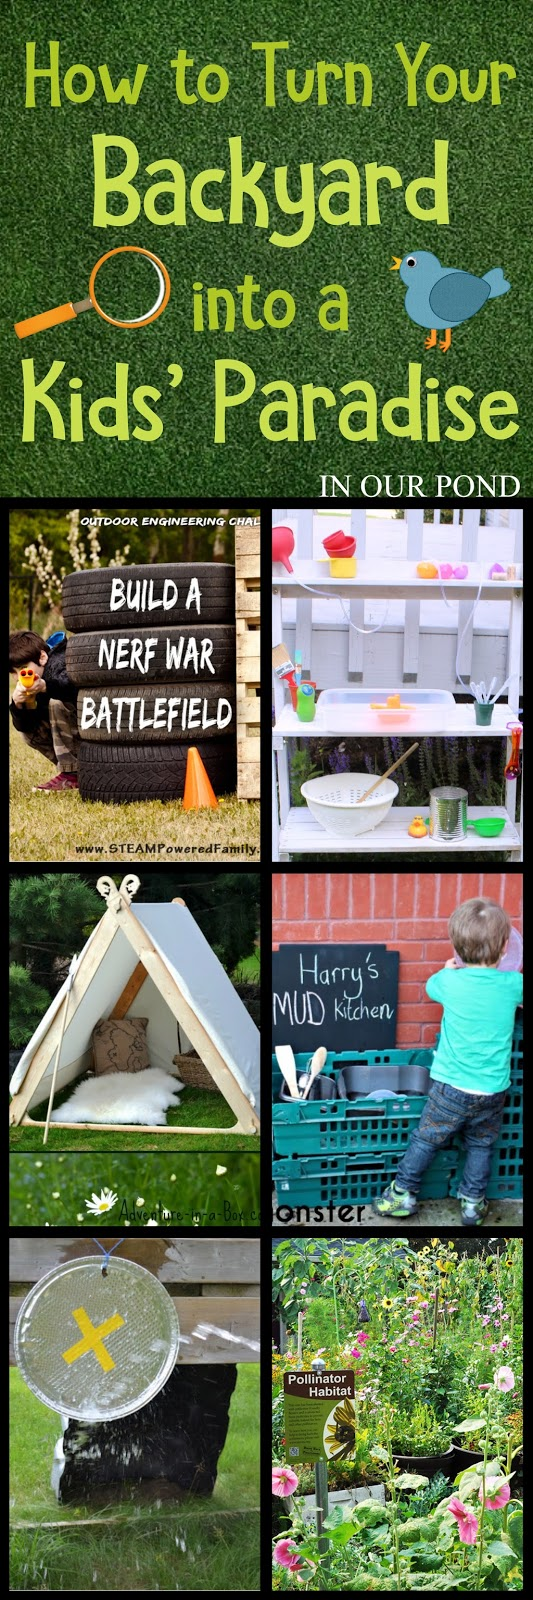 How to Turn Your Backyard into a Kids' Paradise from In Our Pond  #summer #garden #backyard #letthechildreplay #fun #summerfun #playiswork #summerbreak #yard #diy #crafts #crafting #modify #upcycle #recycle #reuse